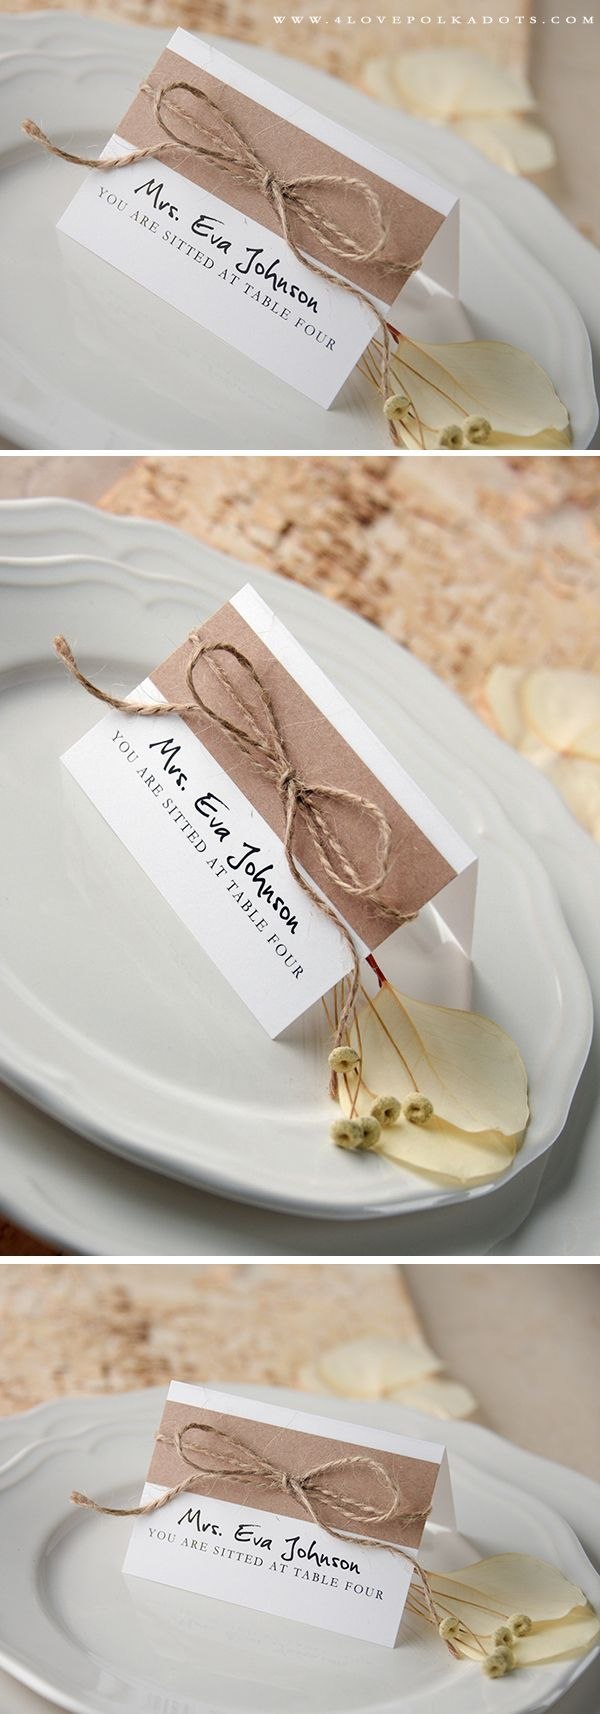 PLACE CARDS rustic and lace | Wedding places, Weddingideas and Place ...